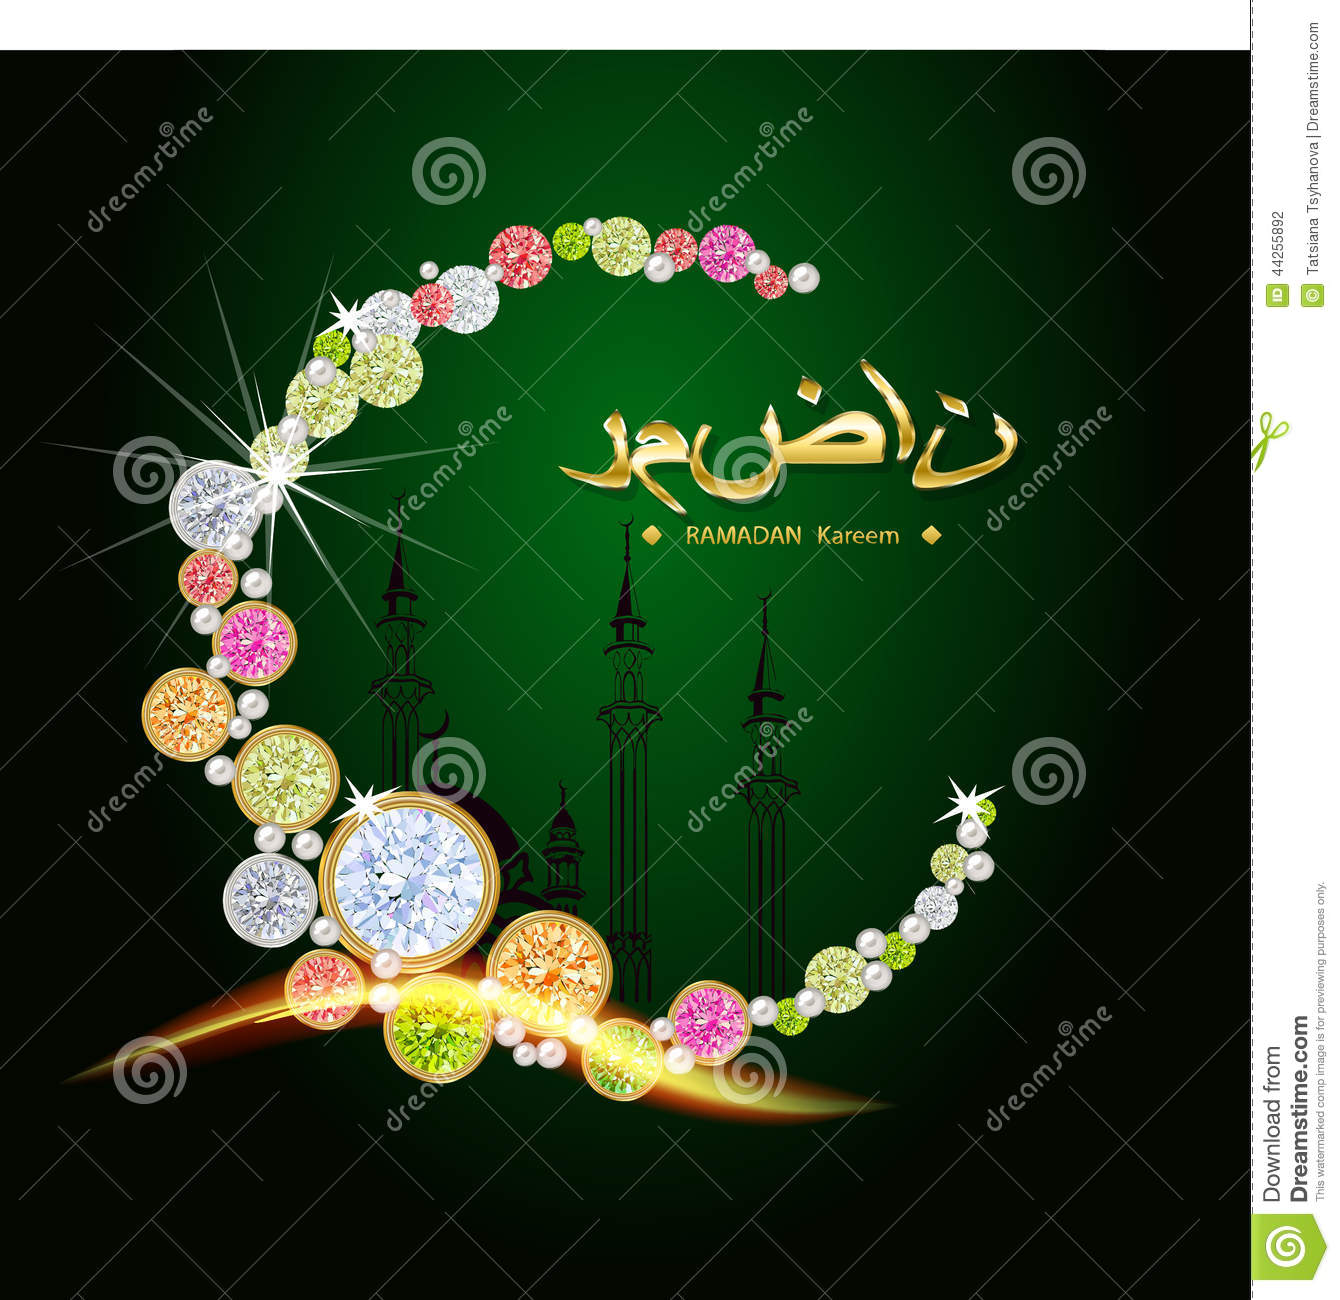 Cool Eid Mubarak Eid Al-Fitr Decorations - eid-ul-fitr-eid-mubarak-greeting-card-arabic-pattern-decorated-light-beige-background-mosque-morning-nature-background-holy-44255892  Picture_255259 .jpg